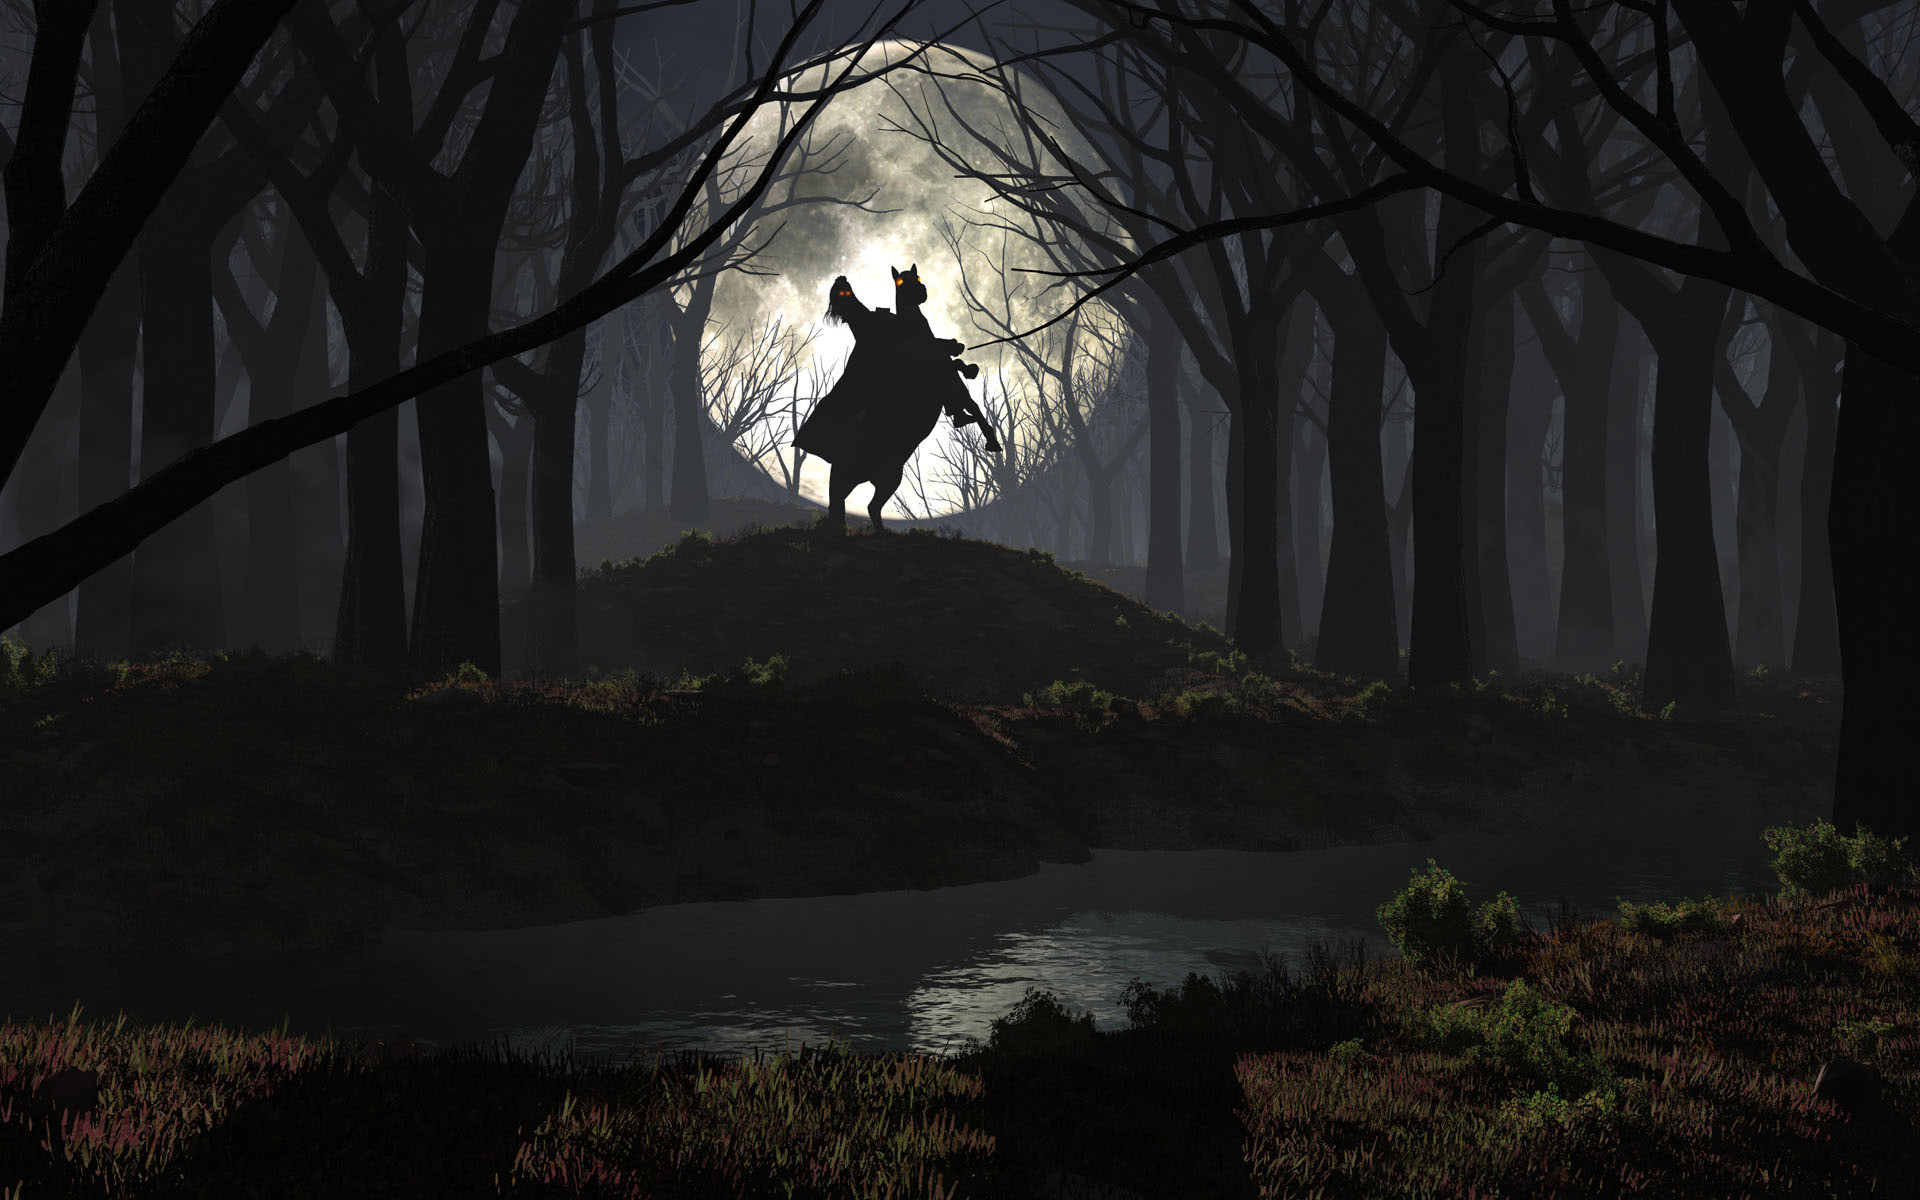 Rider in the spooky forest wallpaper, Rider in the spooky forest Fantasy HD  desktop wallpaper